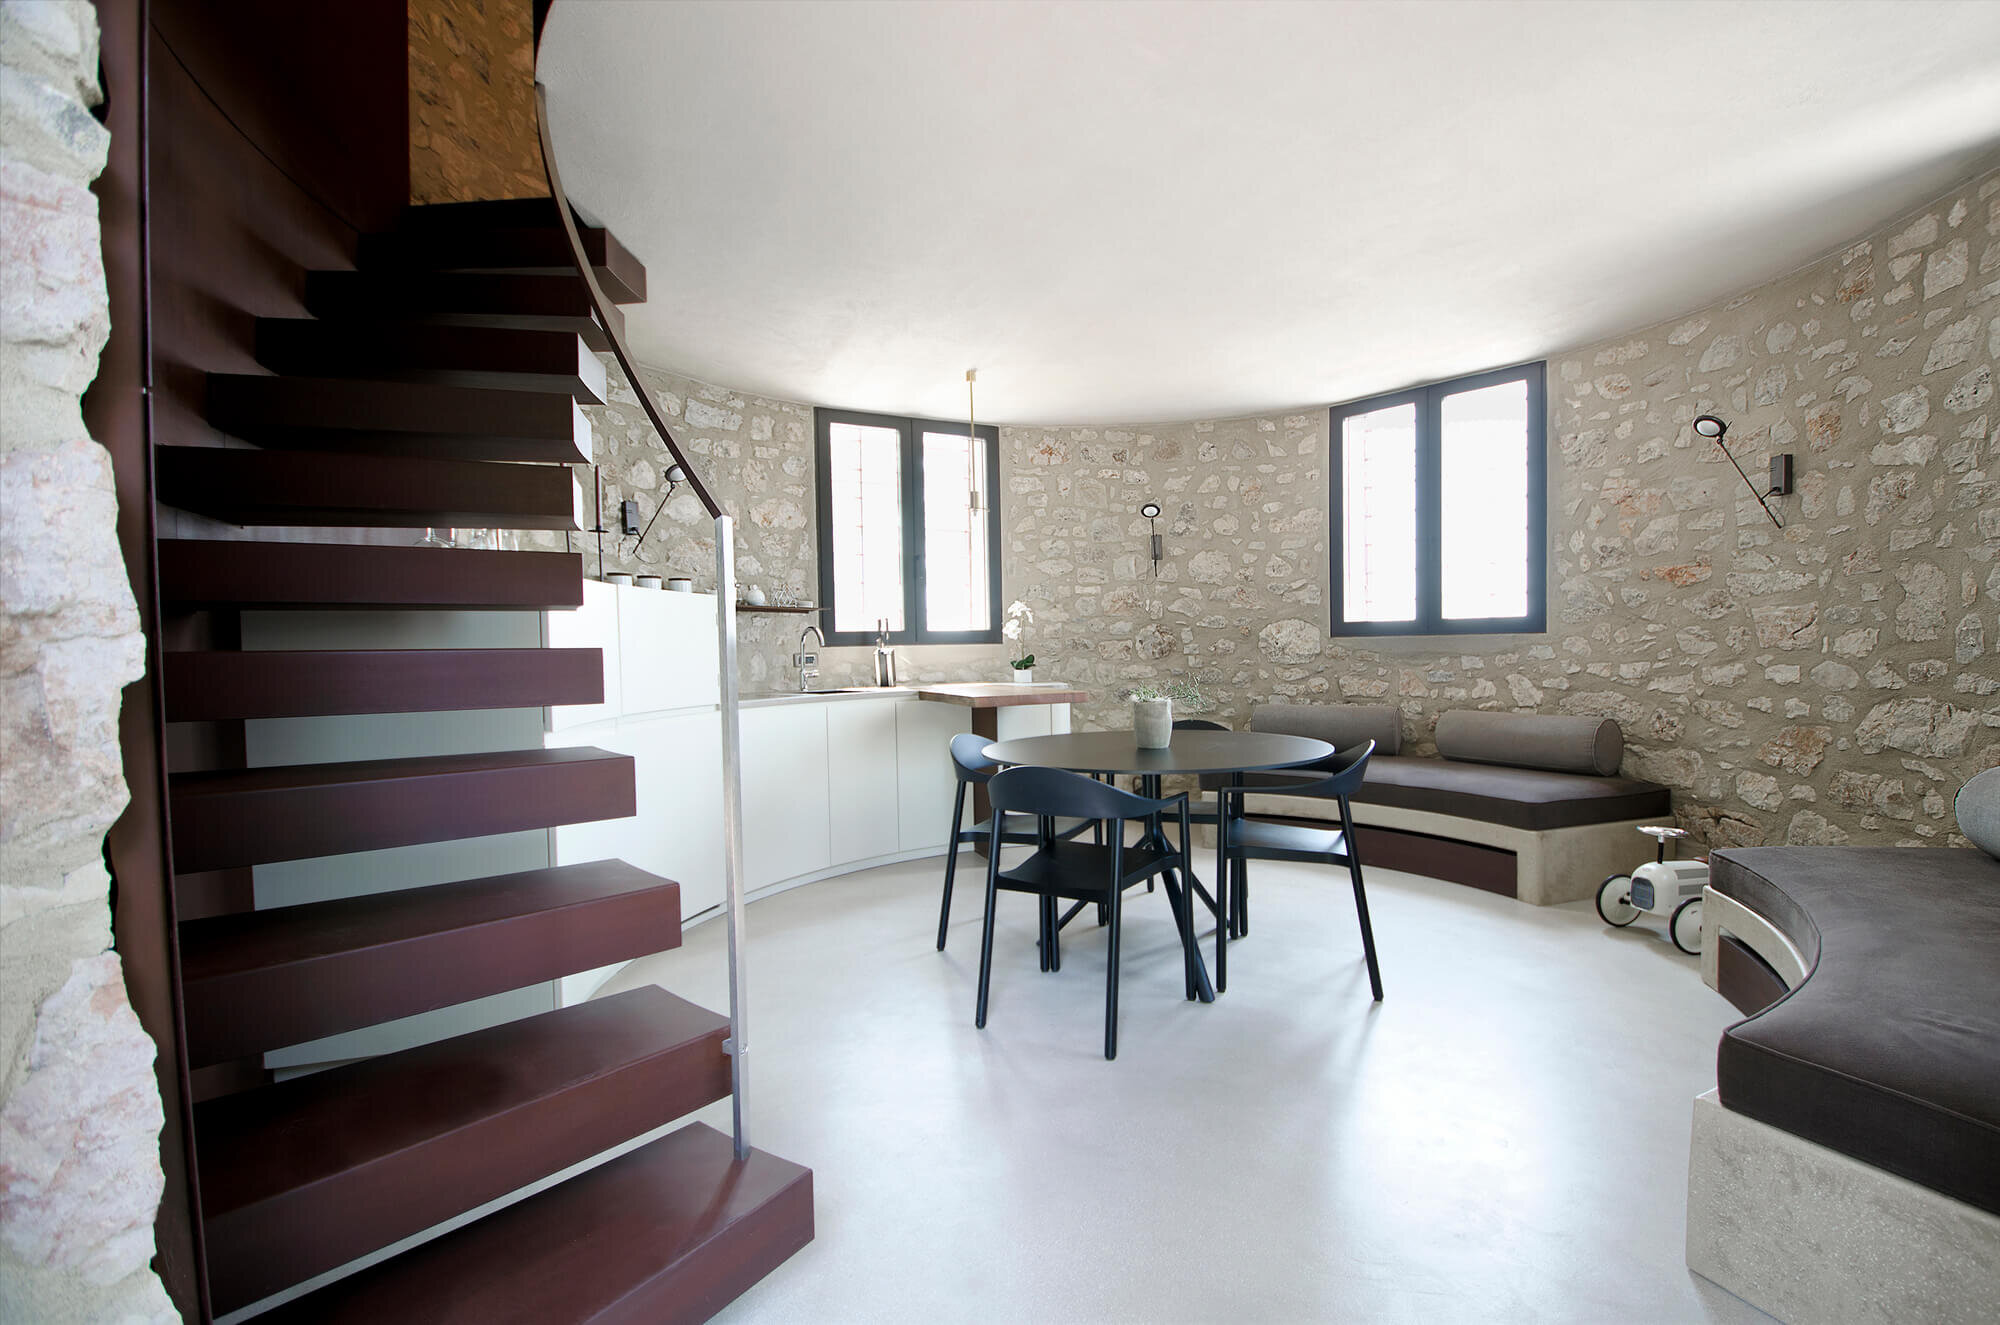 A-New-Life-for-a-Little-Tower-studio-aledolci&co-Italy-13